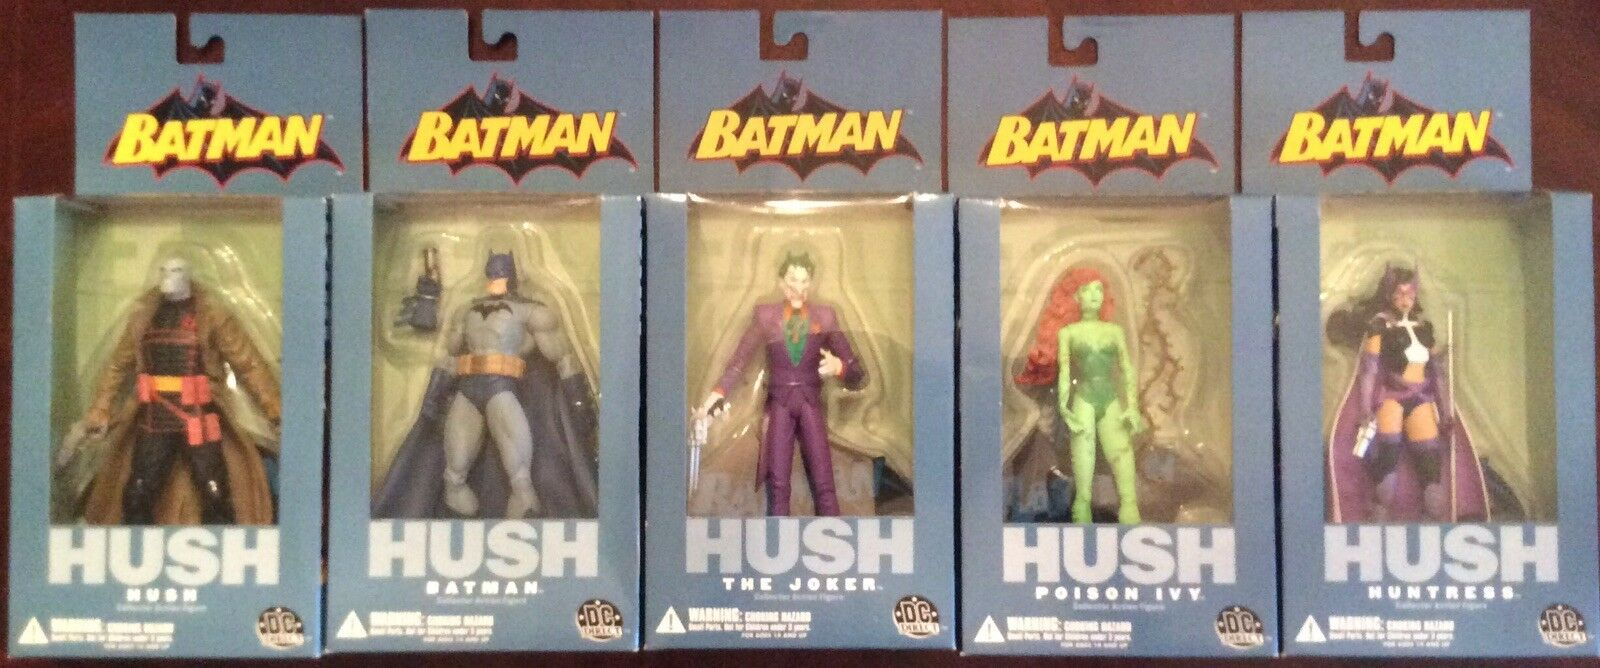 DC Comics Batman Jim Lee Hush Series 1 Action Figure Set of 5.